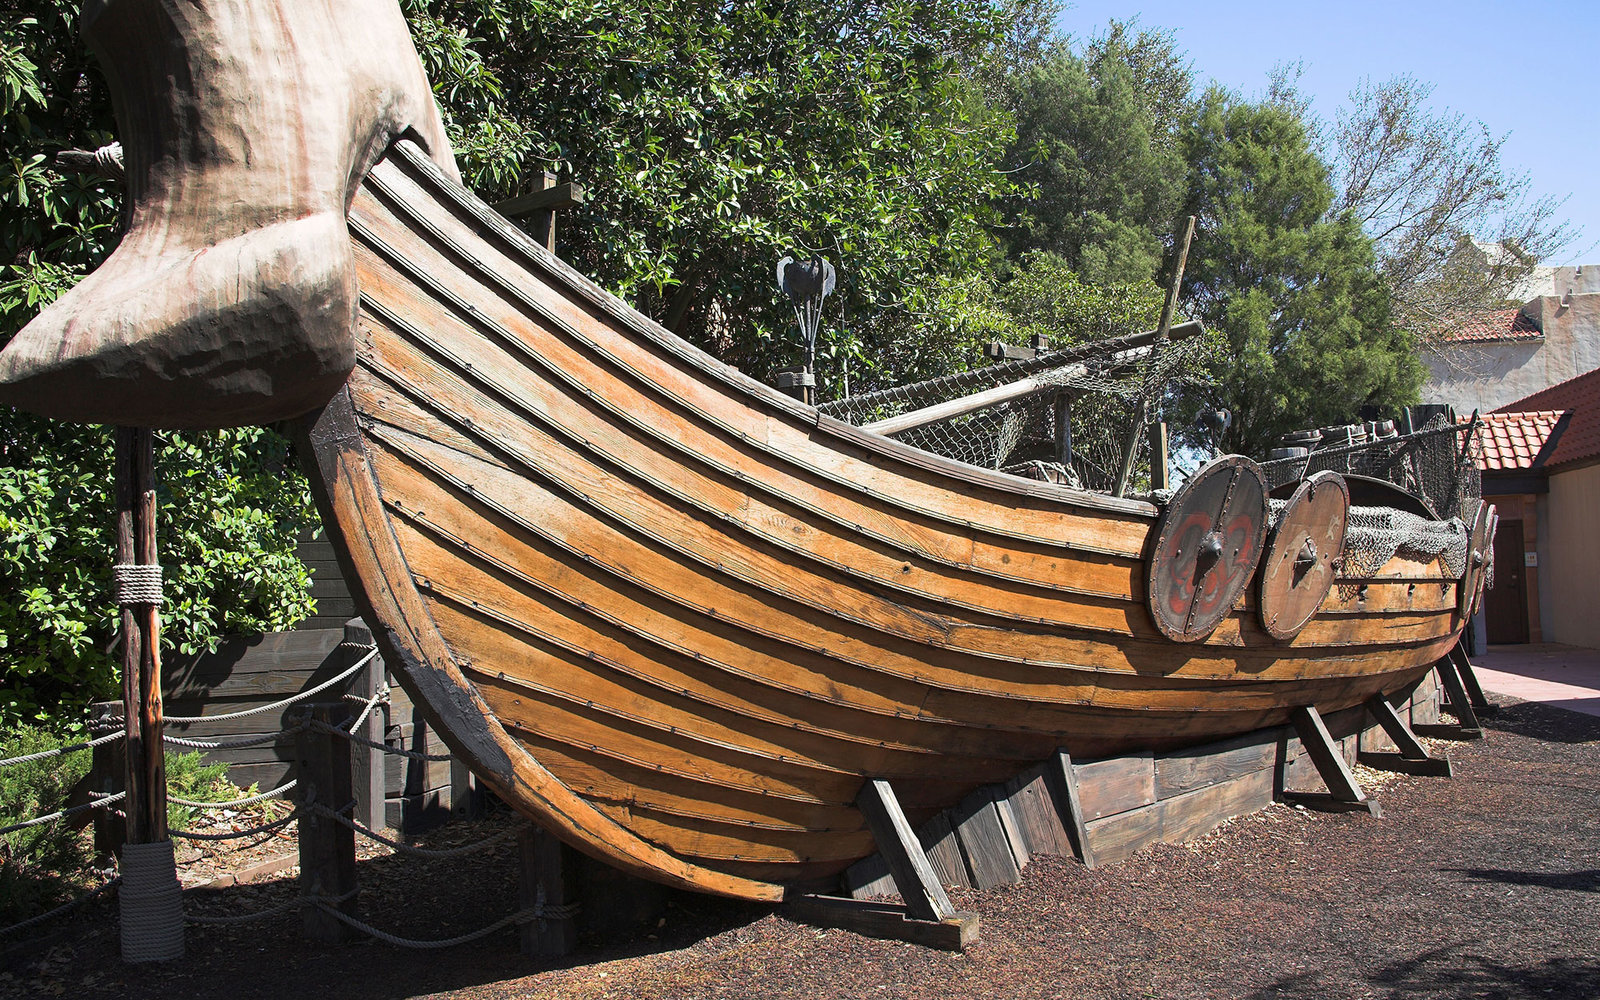 A6F7MM Viking ship in Norwegian section of EPCOT Center, World Showcase, Disney World, Orlando, Florida, USA. Image shot 2007. Exact date unknown.